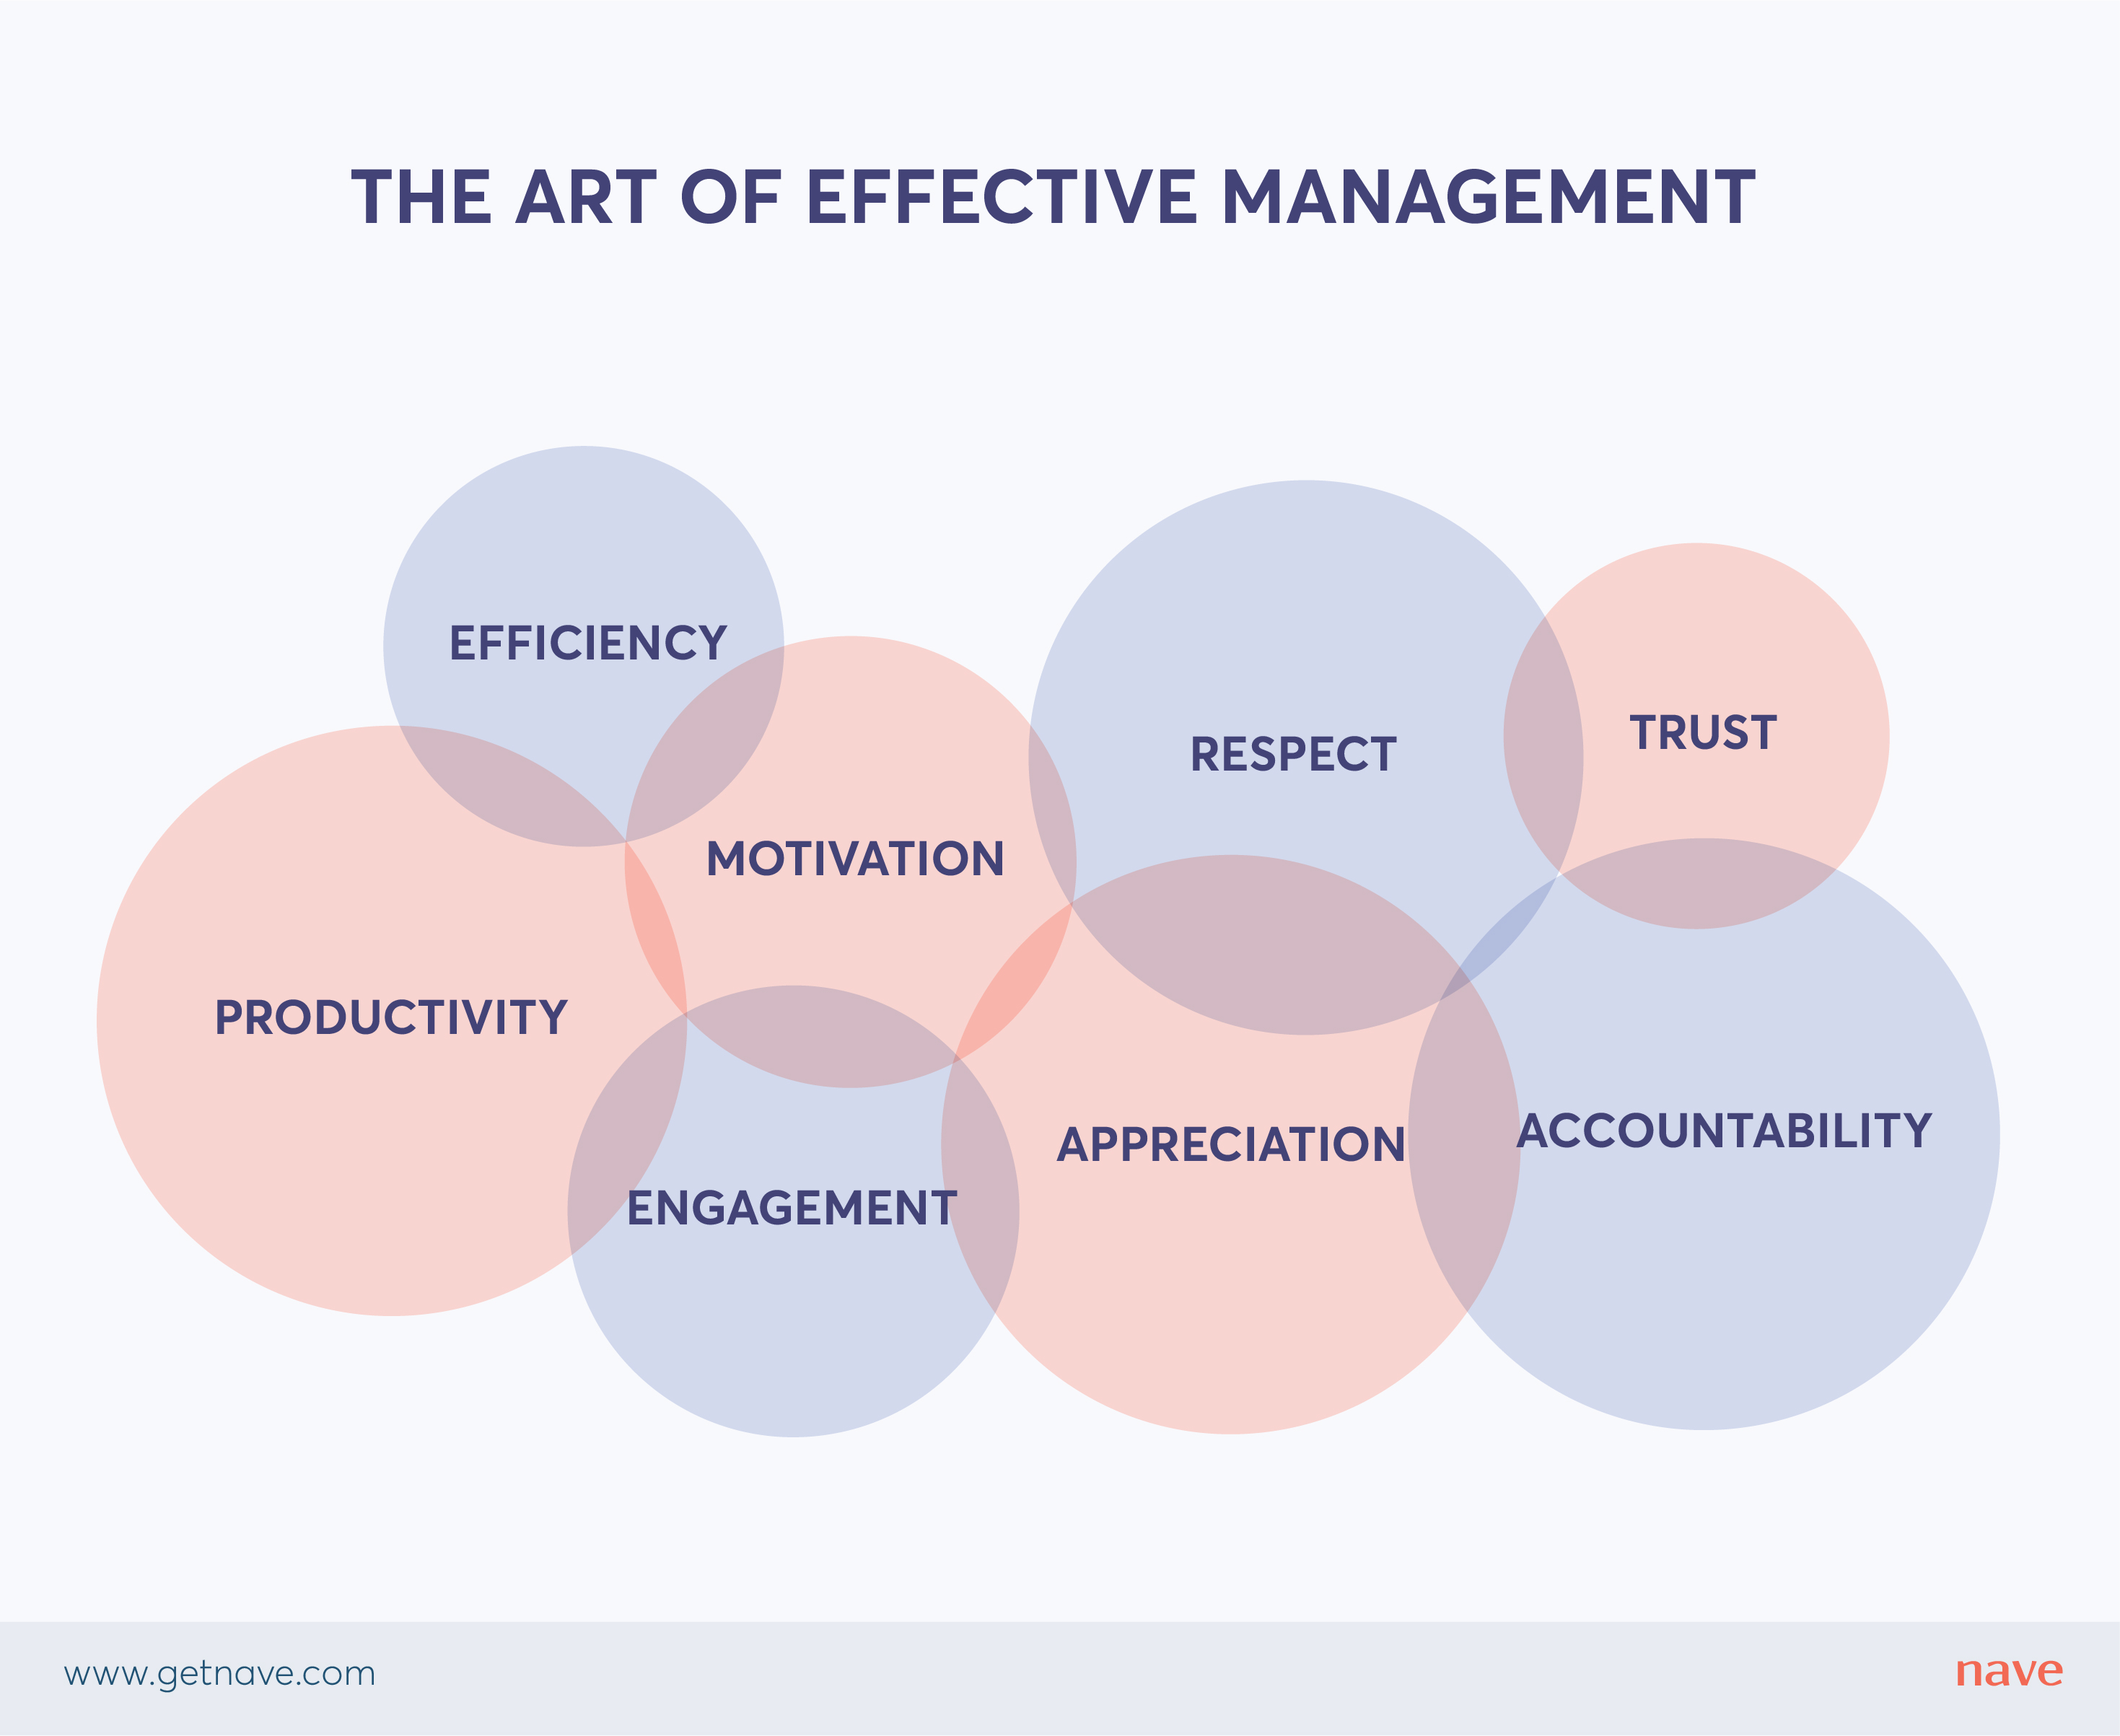 The art of effective management